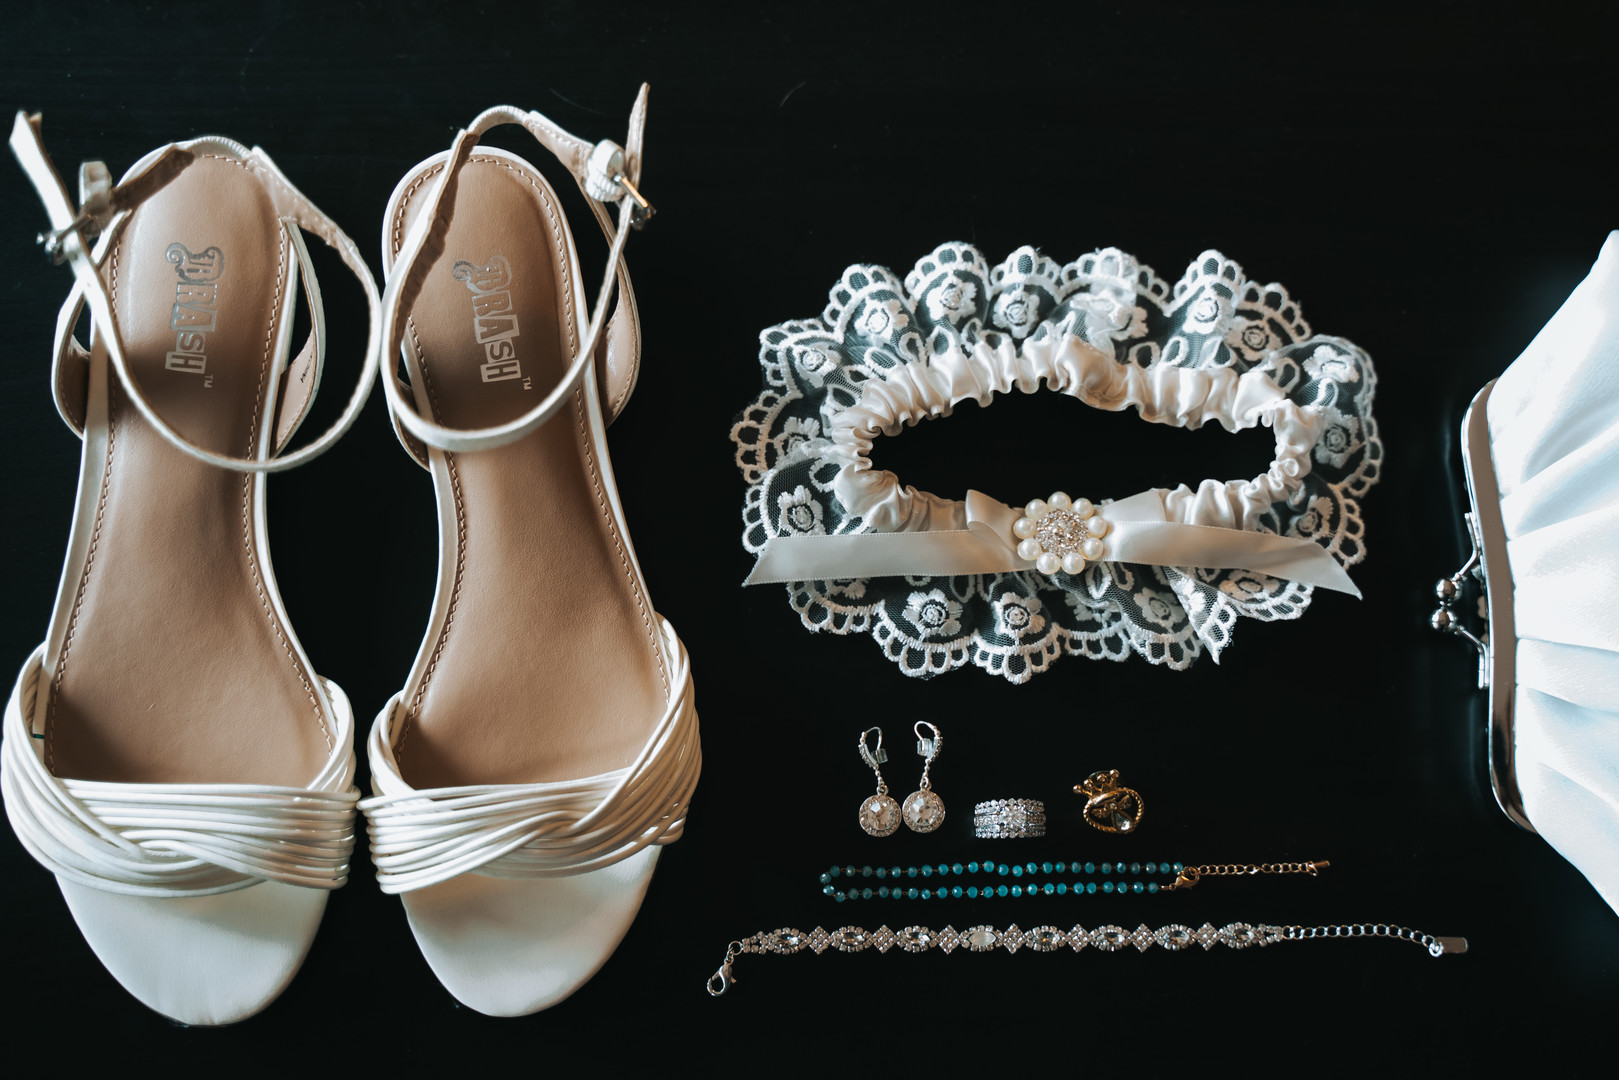 Bridal shoes and accessories: Beautiful Illinois wedding at Riverside Receptions captured by Windy City Production. See more wedding ideas at CHItheeWED.com!